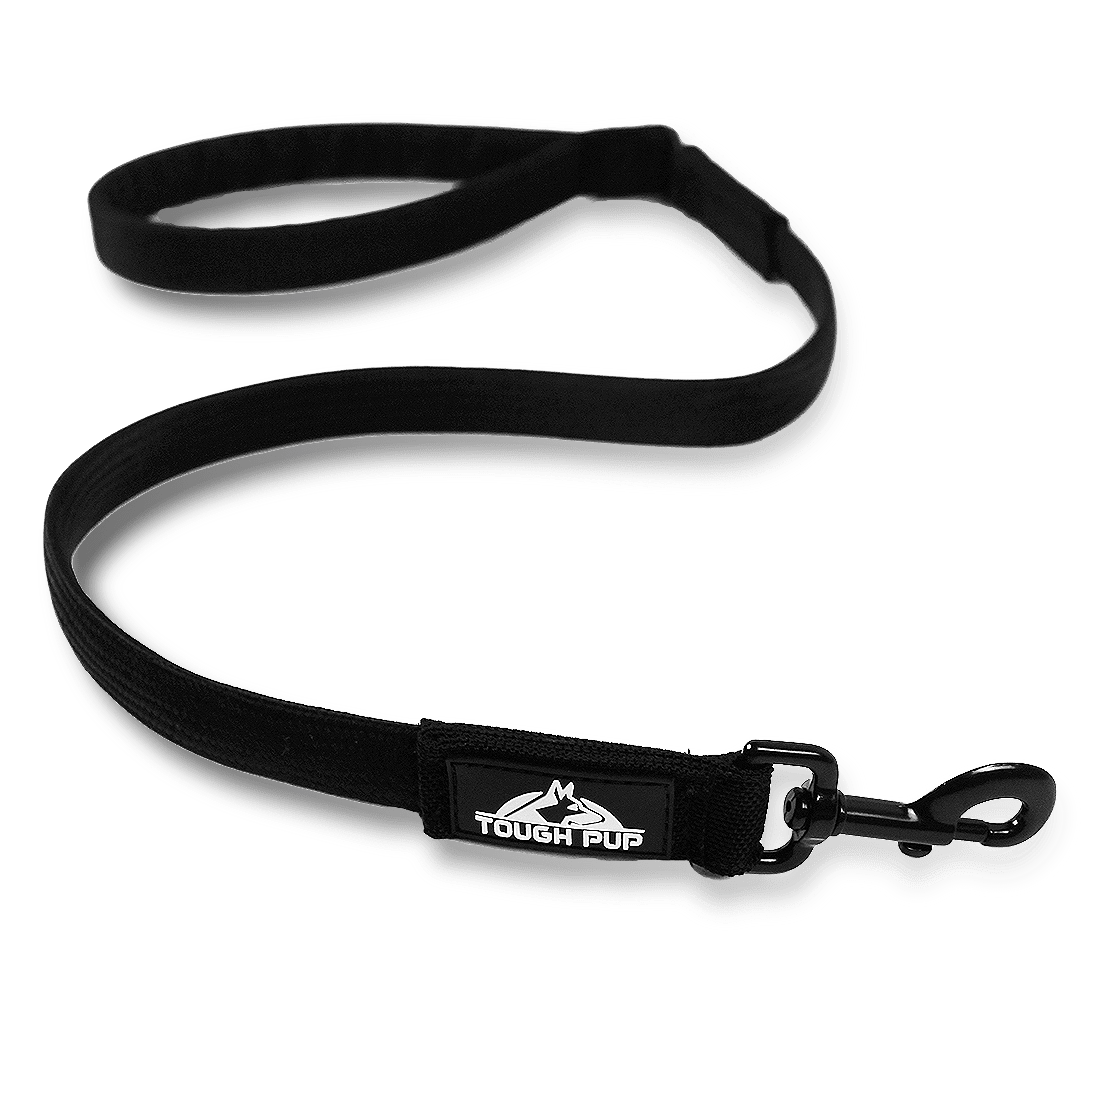 Freedom Flex Anti-Pull Tactical Dog Leash